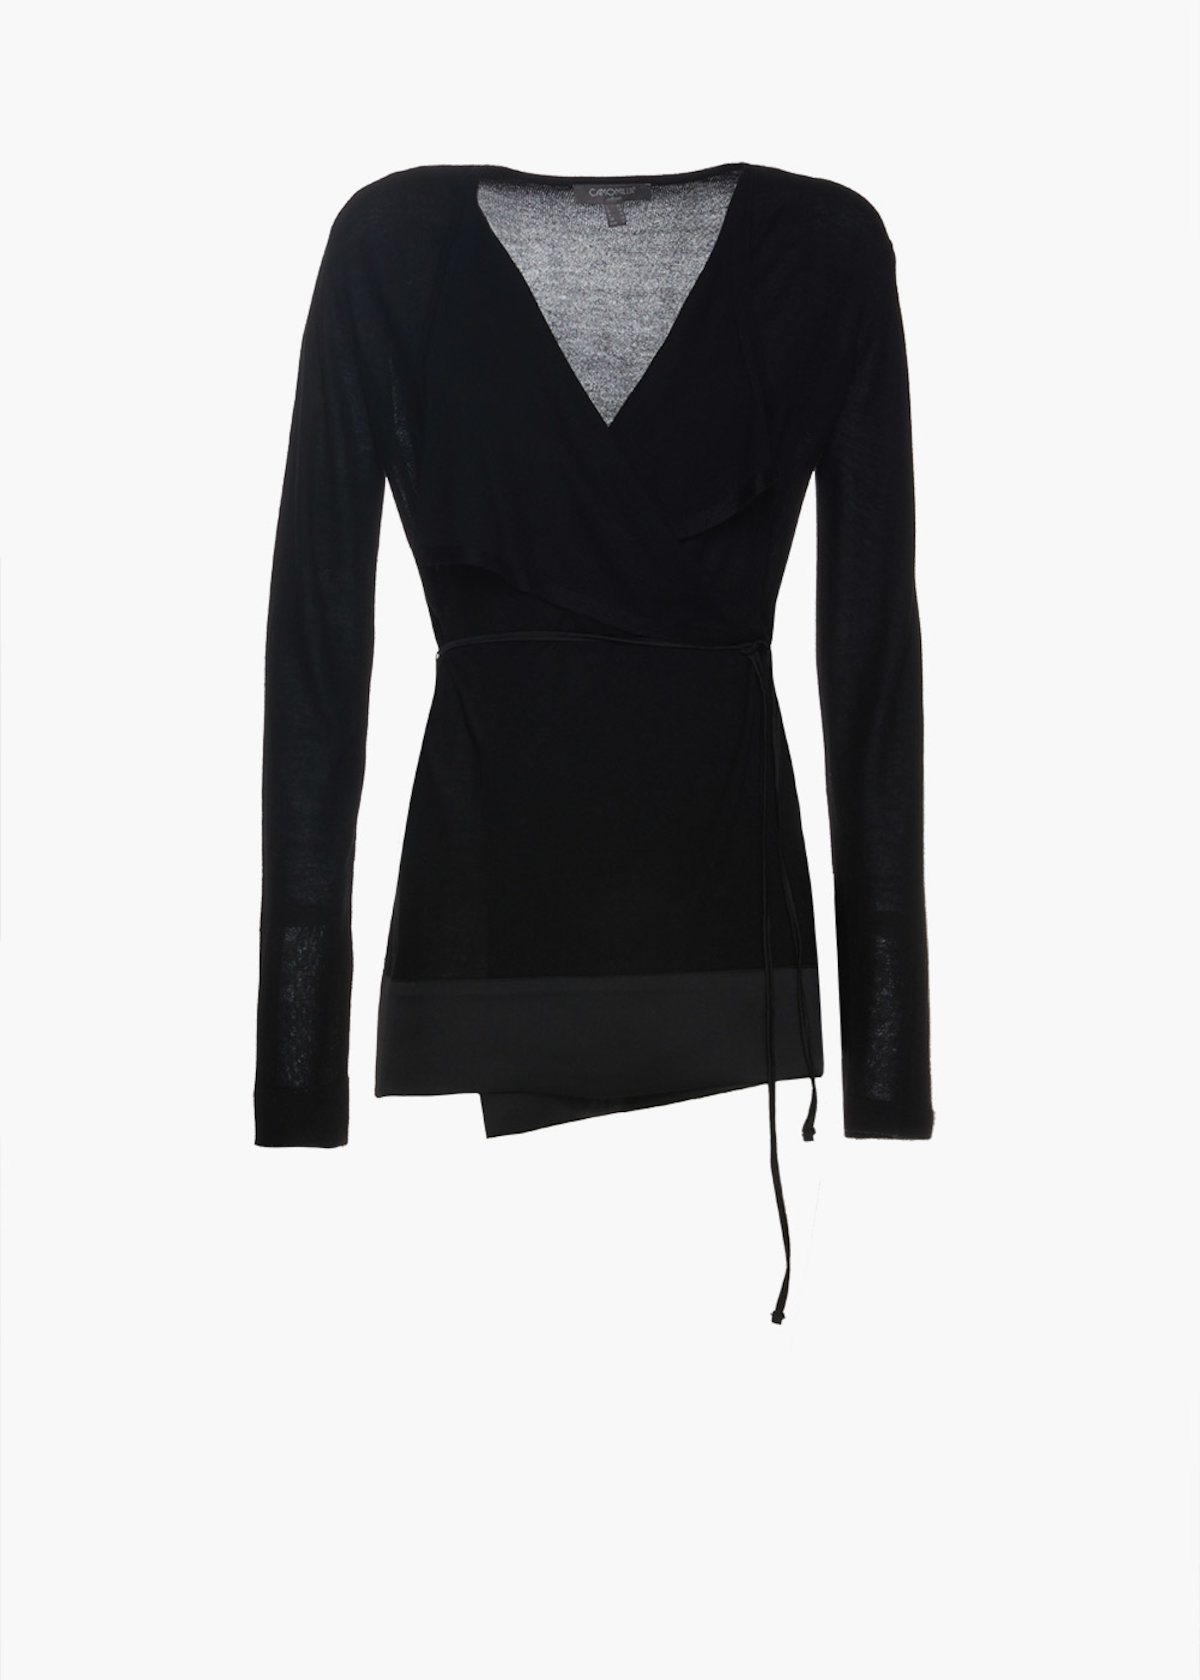 Knitting cardigan Camy with satin detail - Black